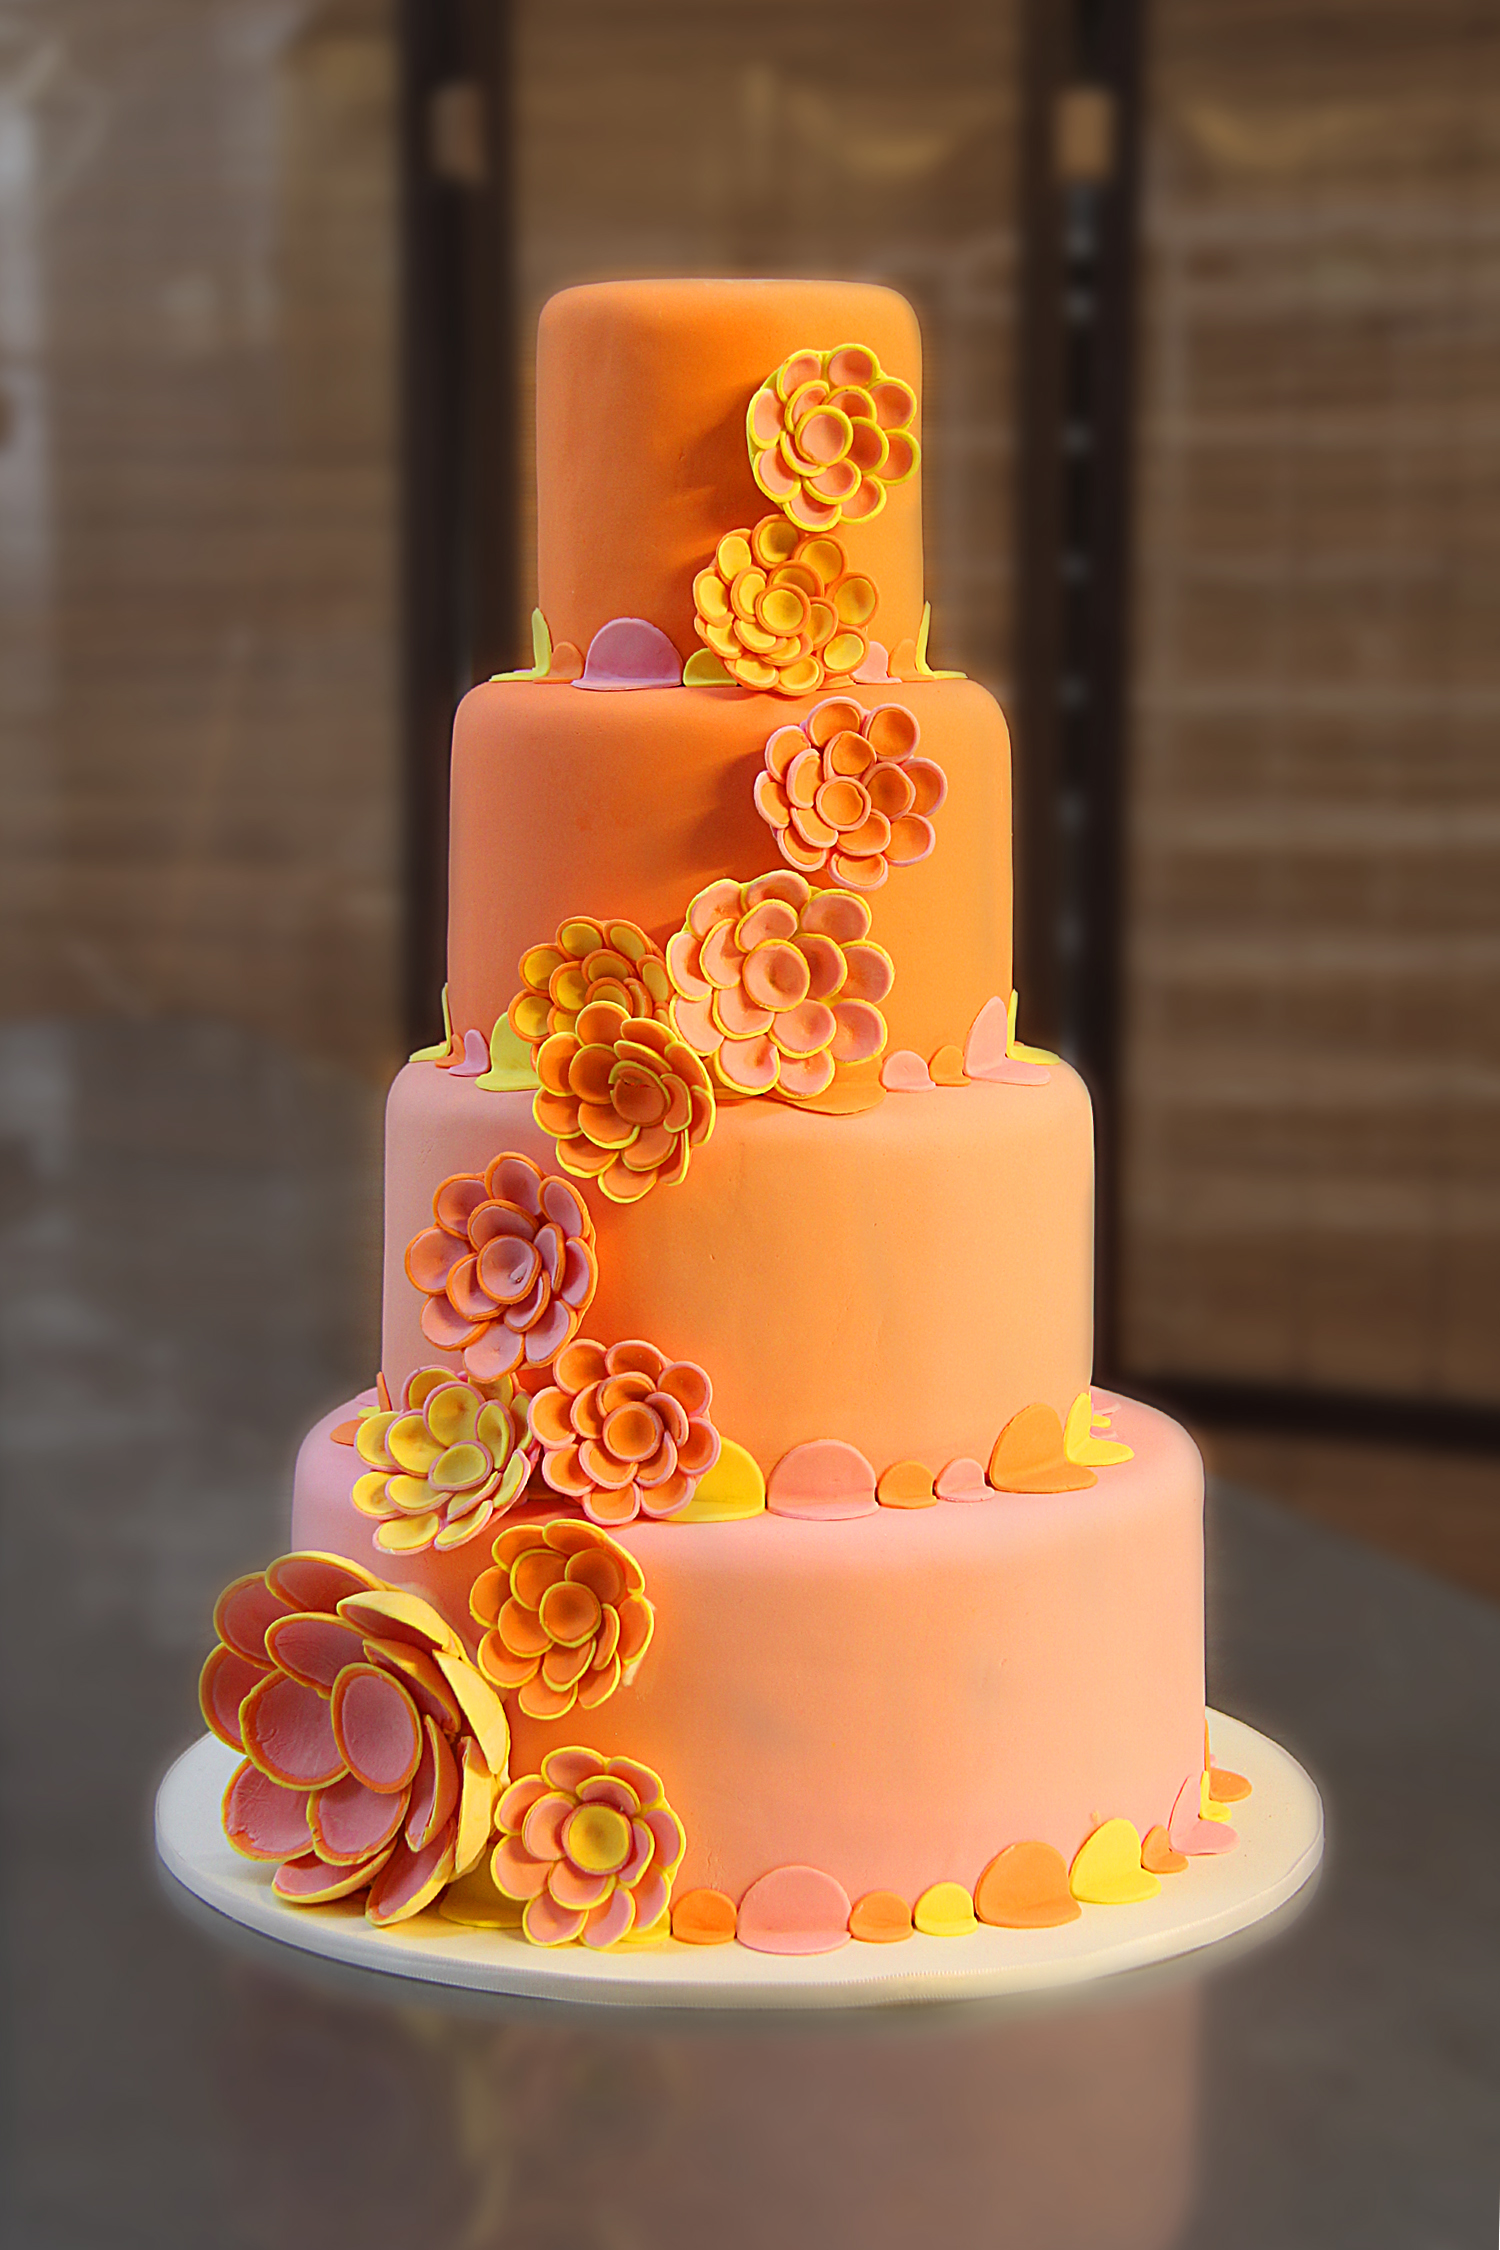 Copy of Four tier round peach ombre wedding cake Hilo Hawaii Big Island Kailua-Kona